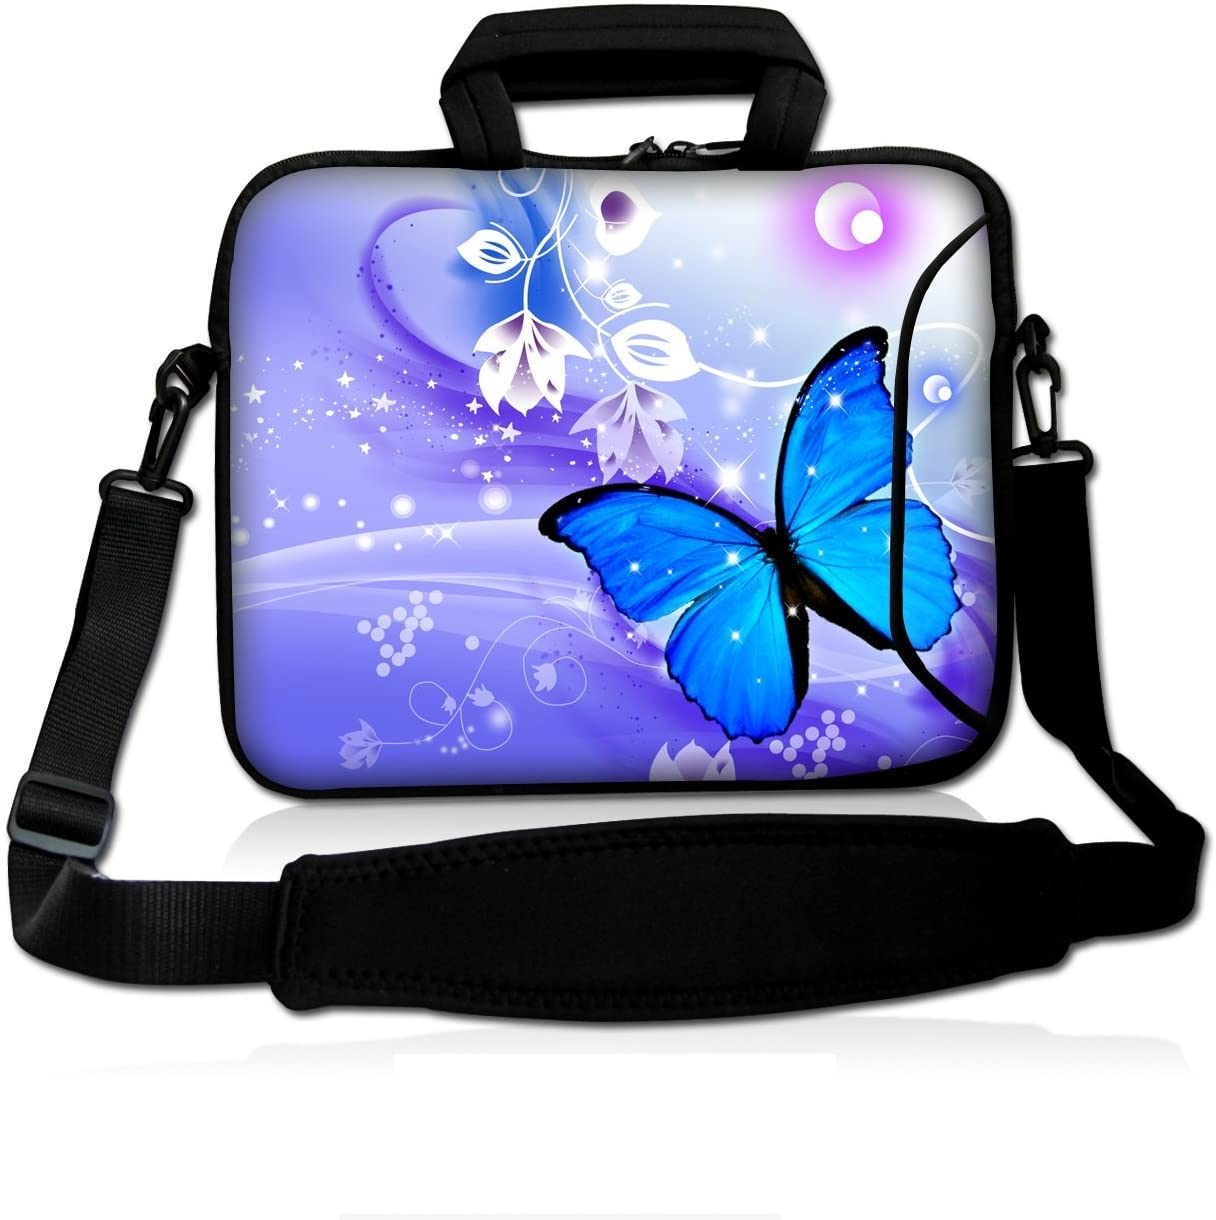 "Blue Butterfly 14"" 14.1"" 14.2"" 15"" 15.4"" 15.6 Inch Laptop Notebook Computer Netbook Soft Shoulder Bag Dual Zipped Neoprene Messenger Bag Case Cover Pouch Holder Pocket - Fshb15-11"